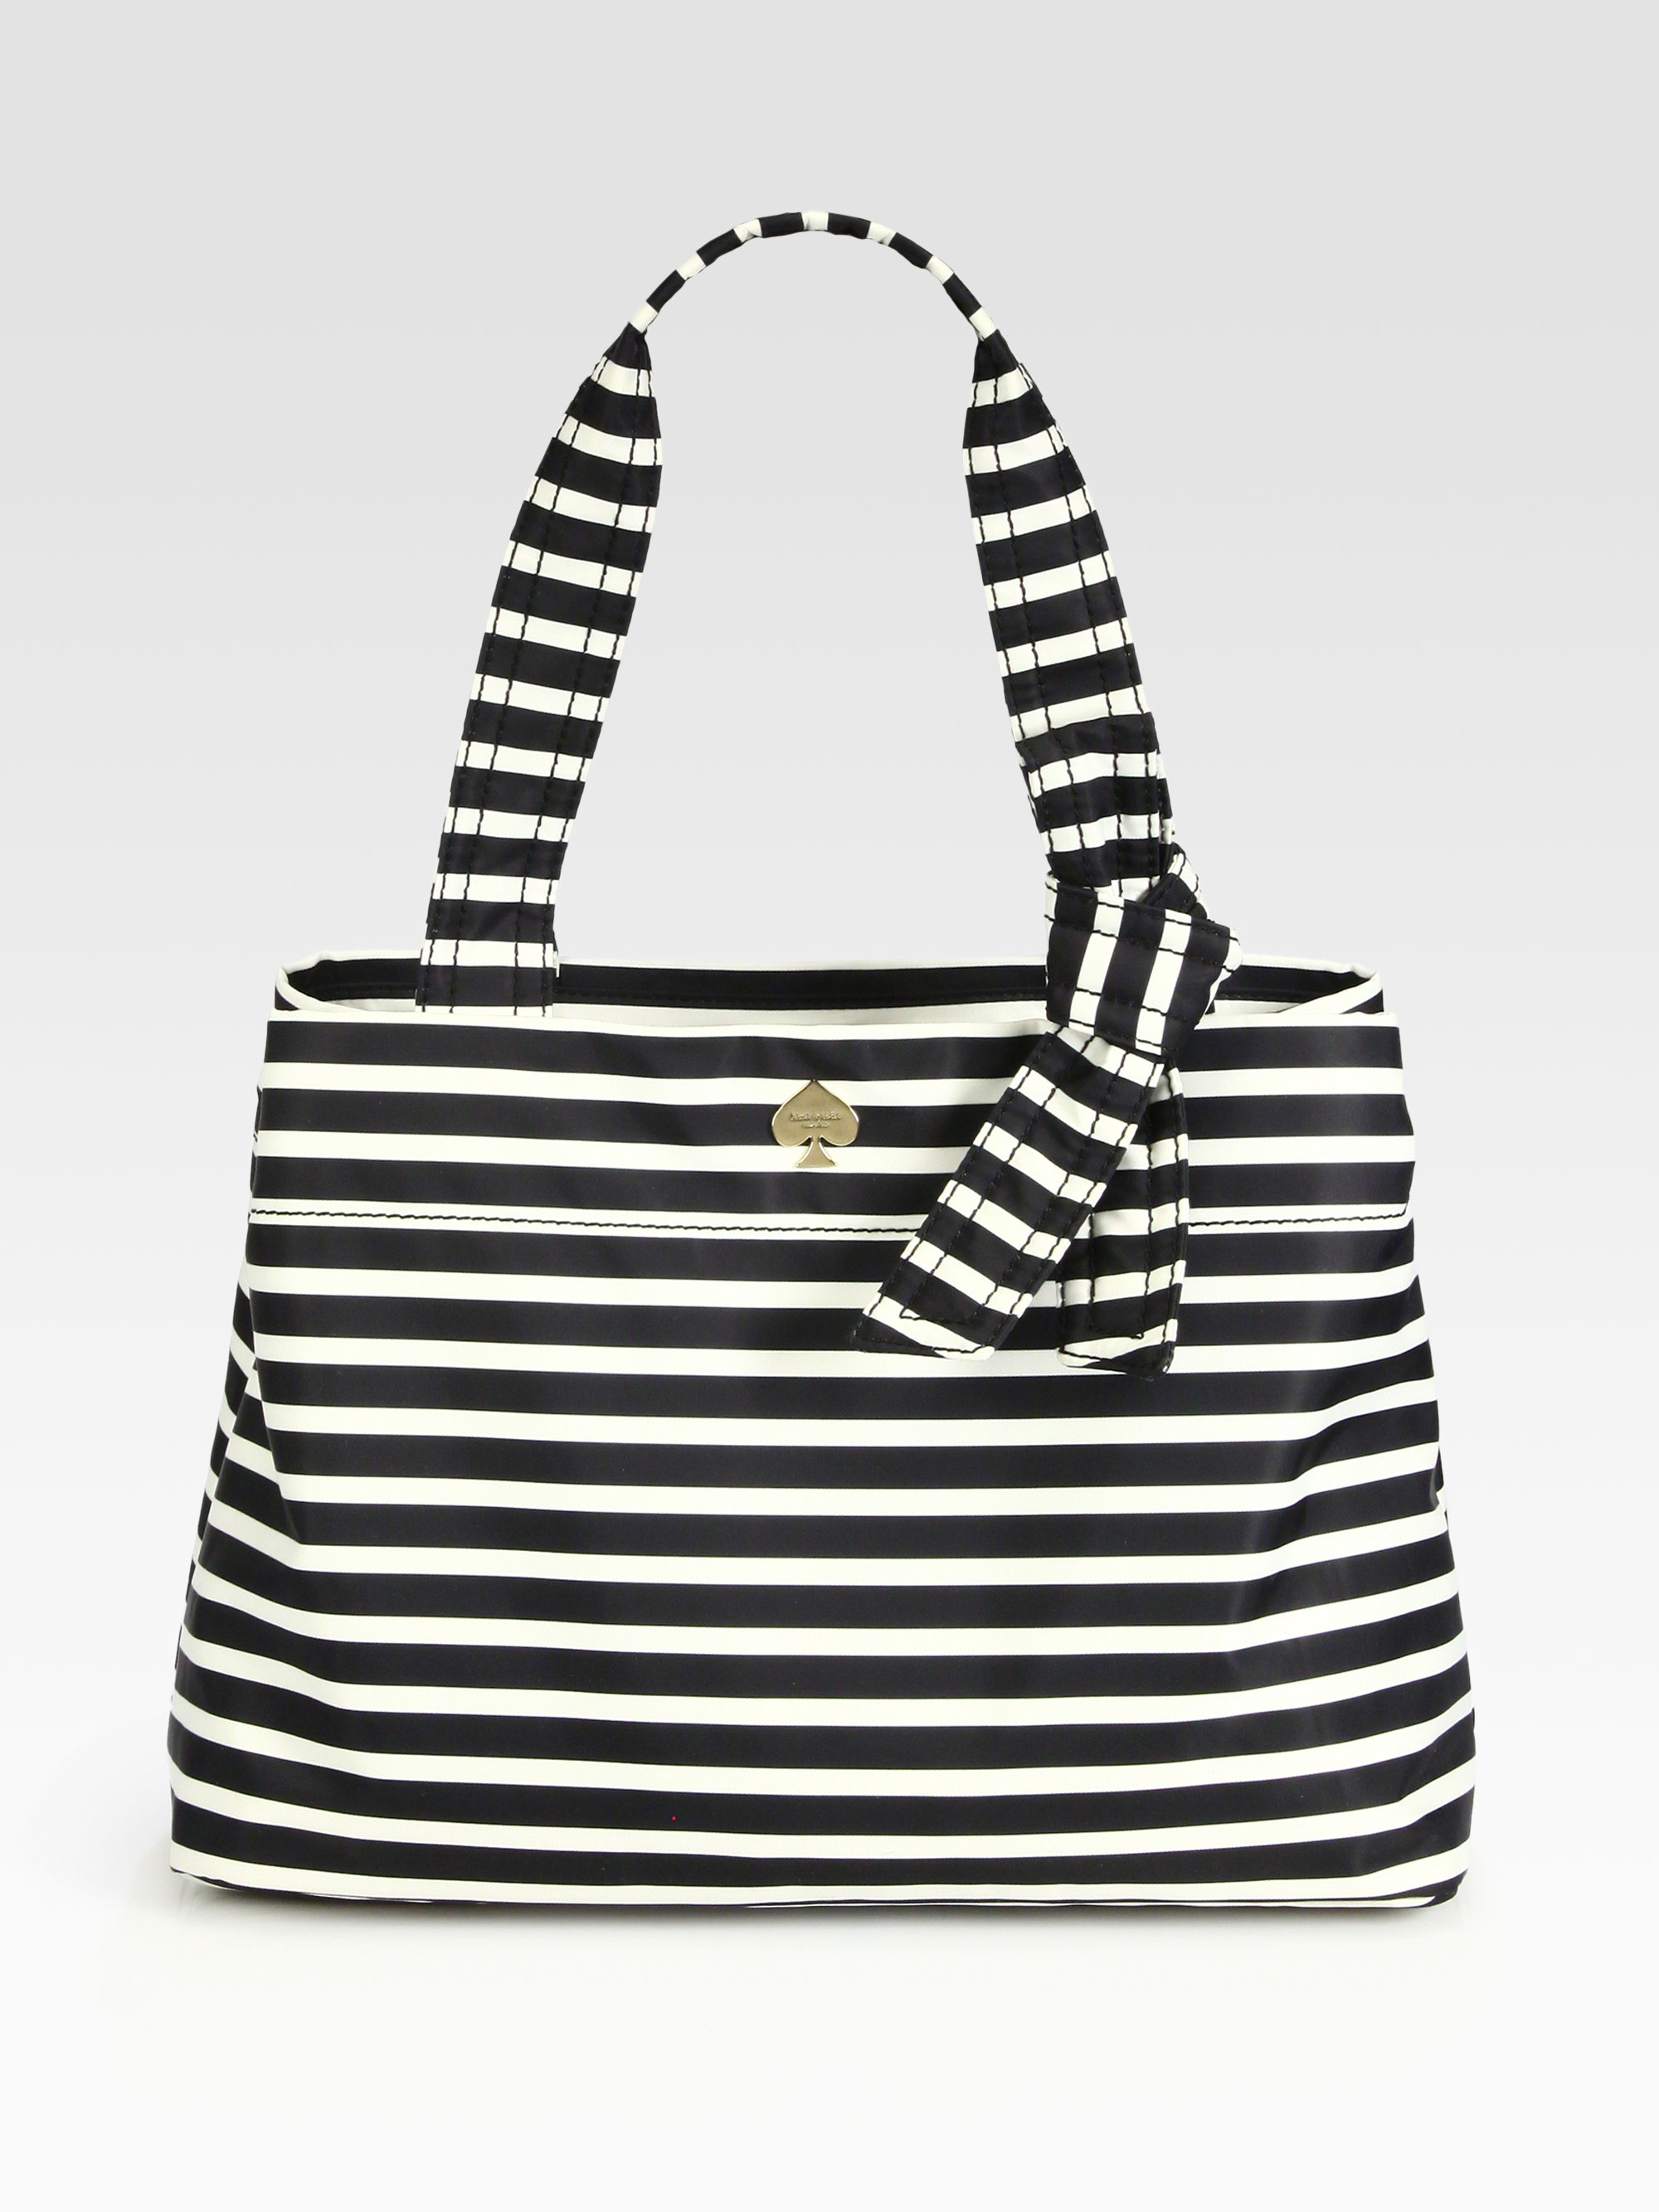 Black And White Striped Kate Spade Bag